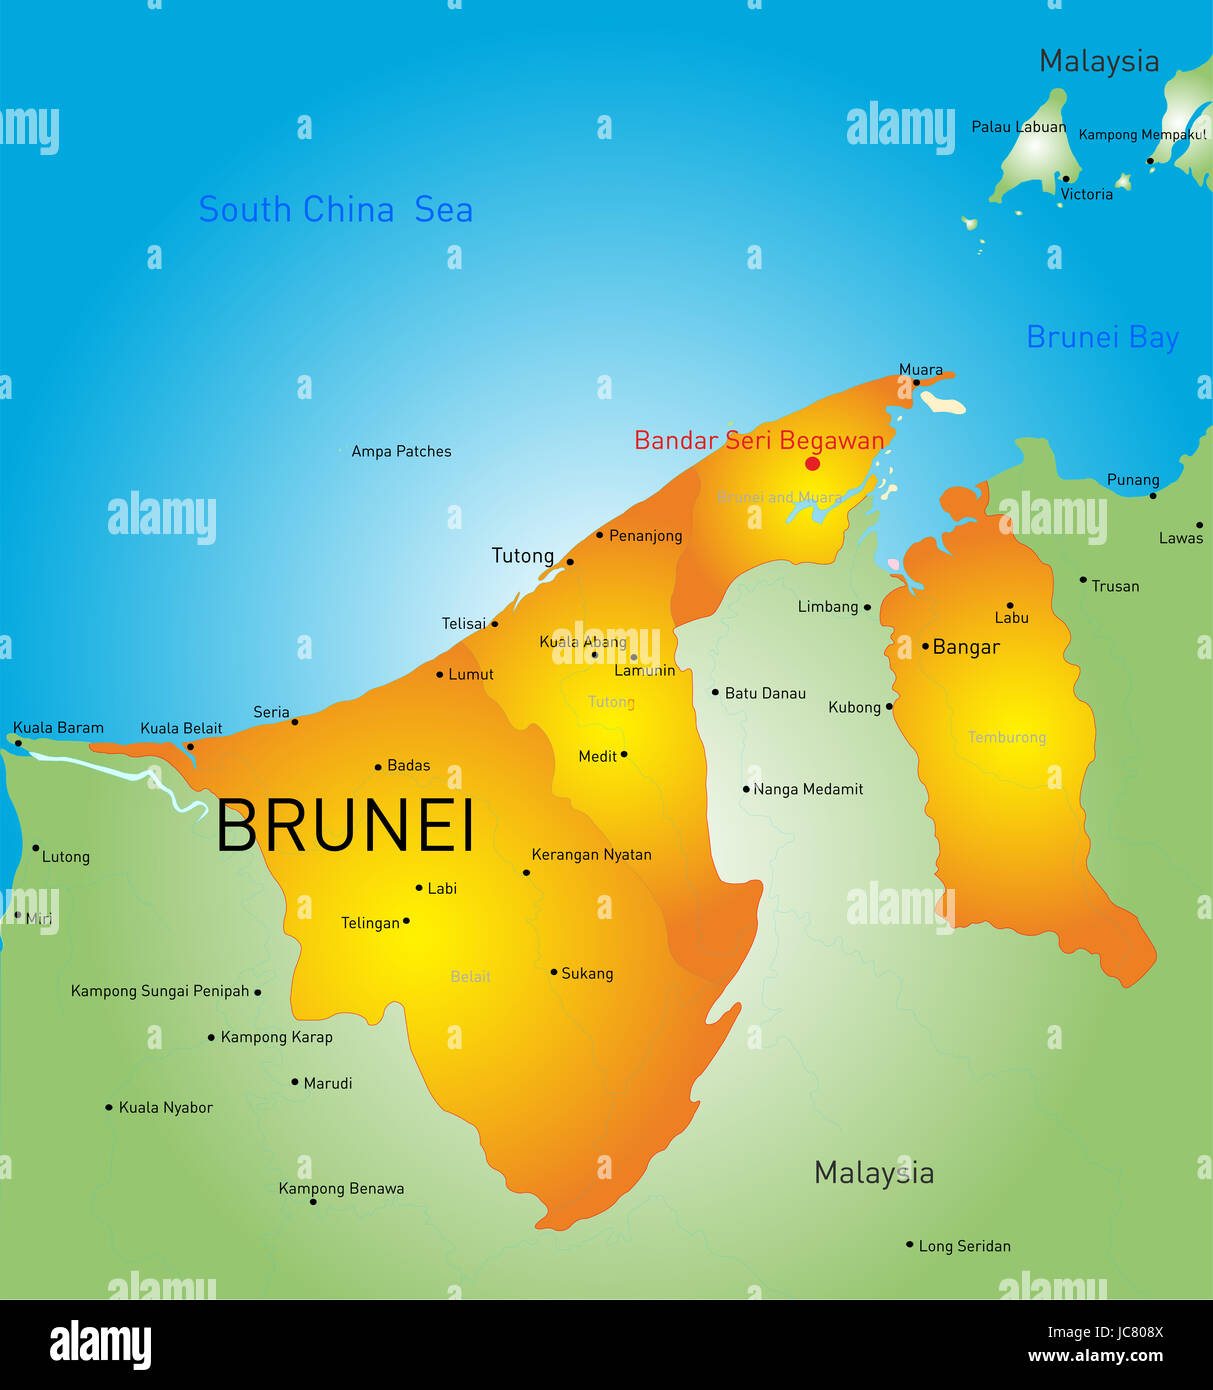 Vector Color Map Of Brunei Country Stock Photo Royalty Free Image - Brunei map